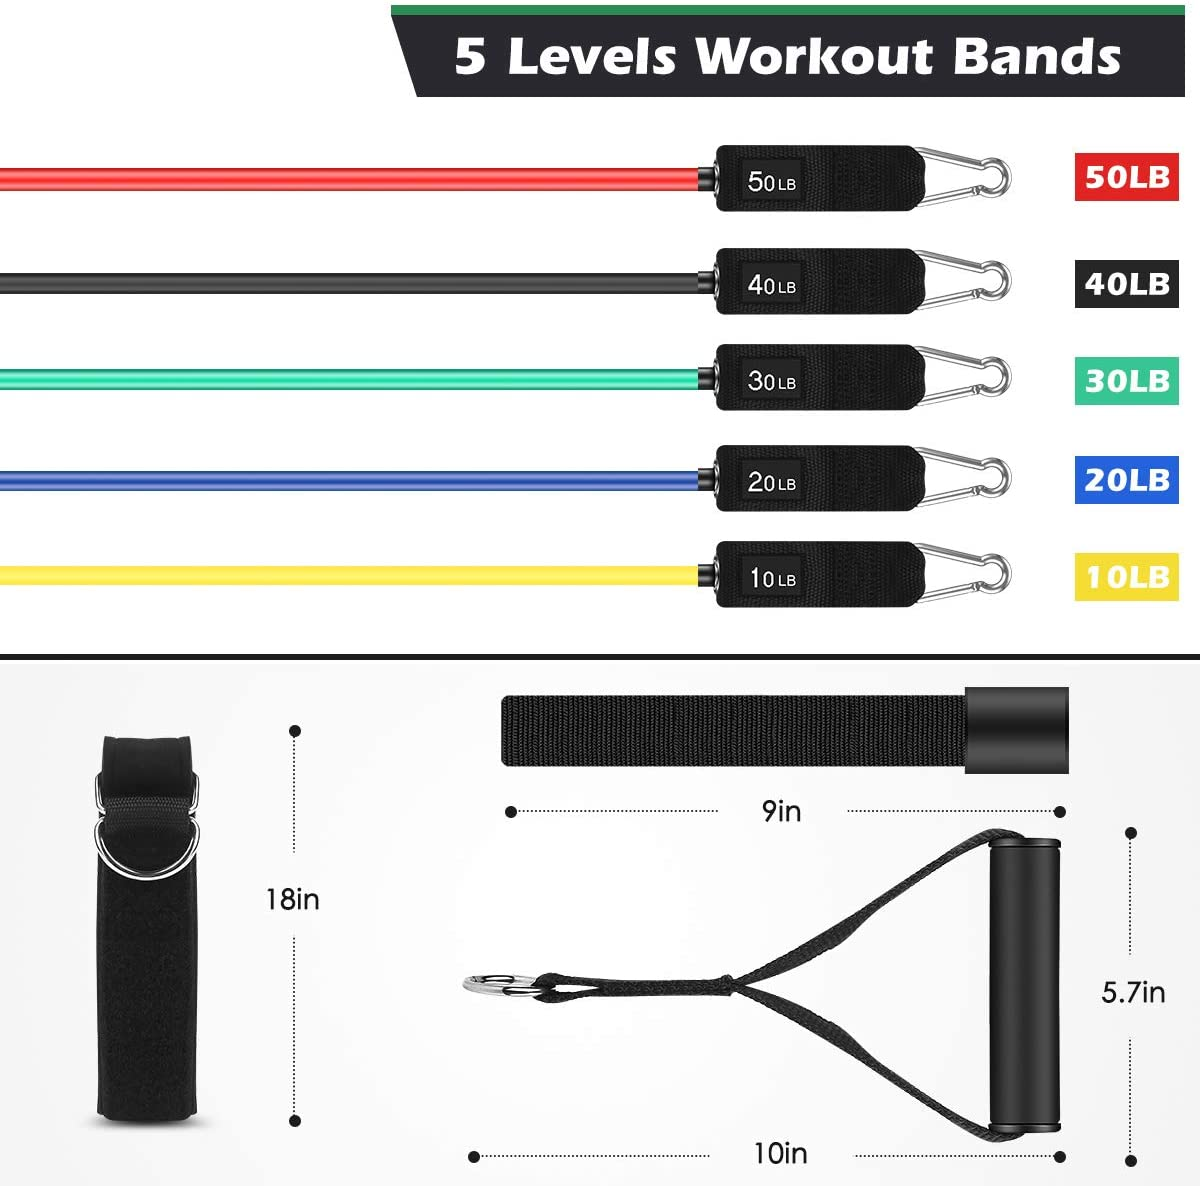 Whatafit Resistance Bands Set (16pcs), Exercise Bands with Door Anchor, Handles, Carry Bag, Legs Ankle Straps for Resistance Training, Physical Therapy, Home Workouts (Set3) : Sports & Outdoors